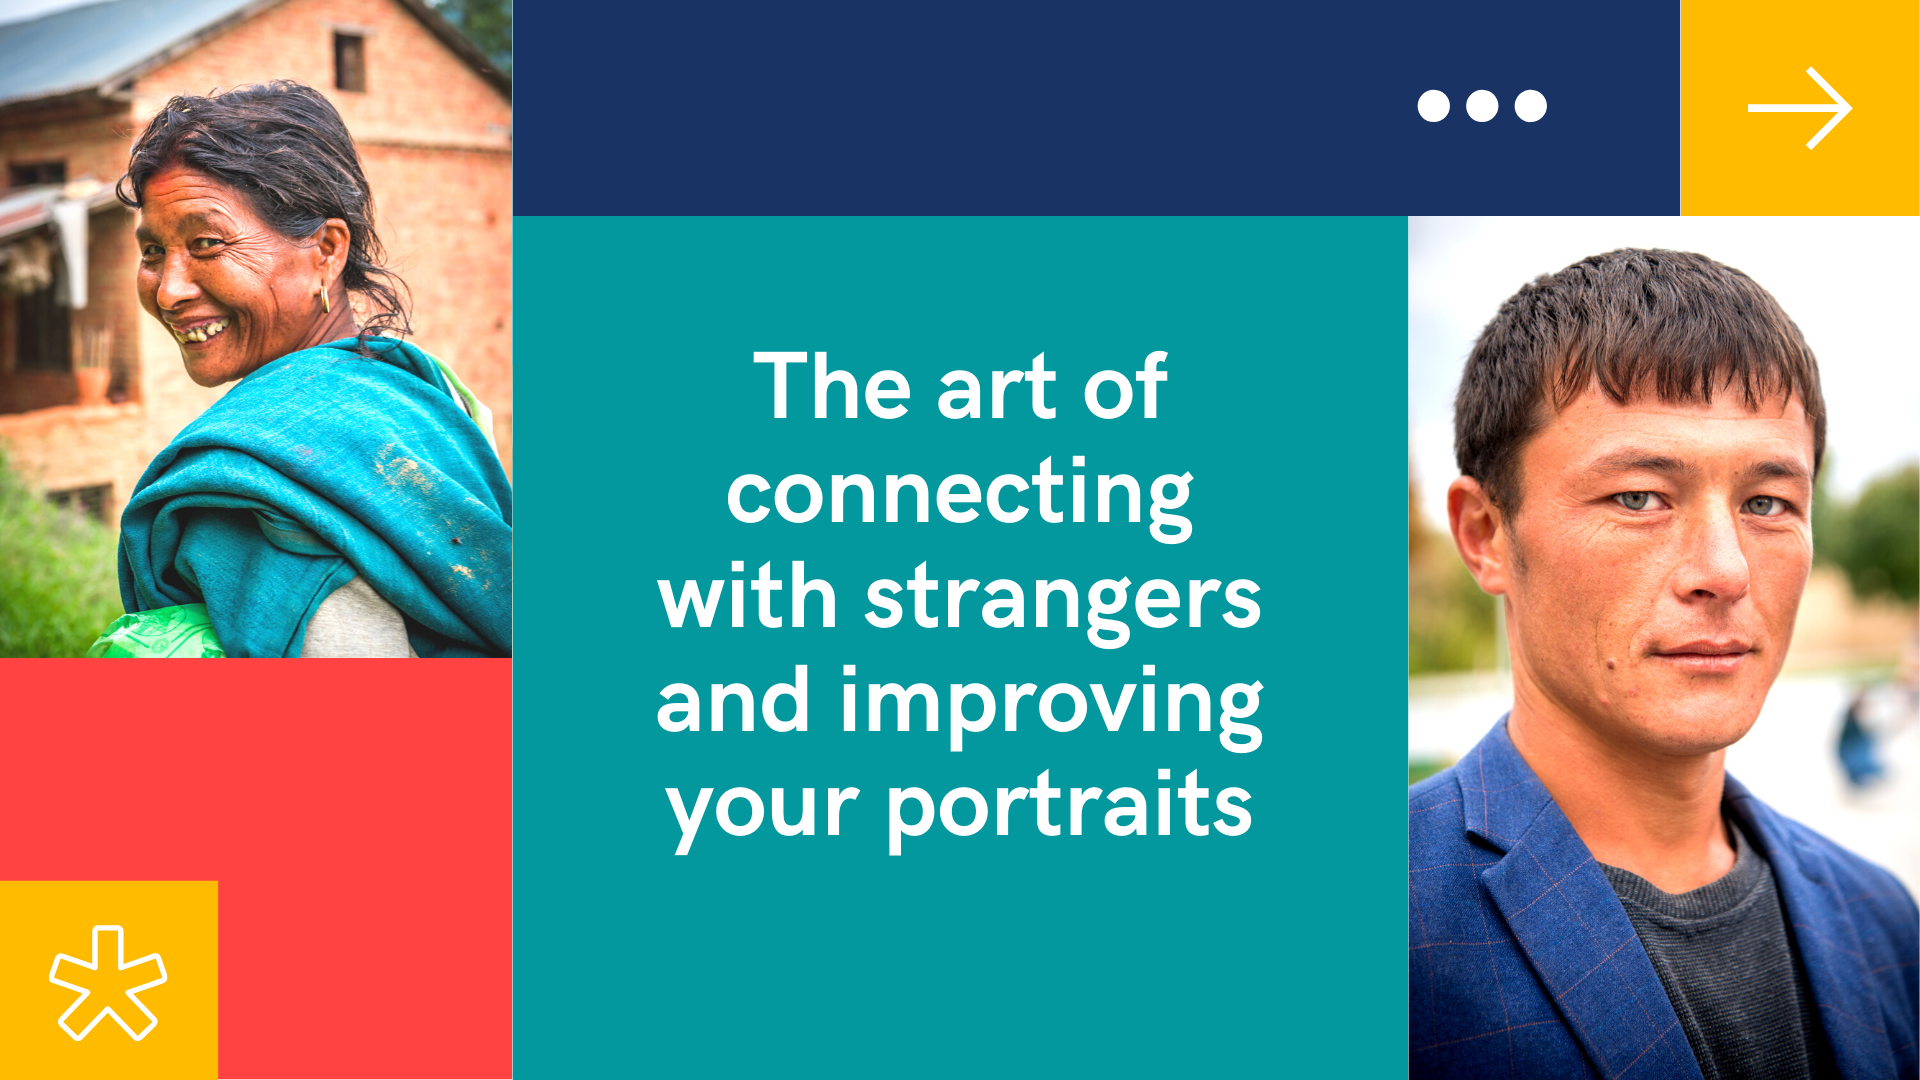 The art of connecting with strangers and improving your portraits  - Lola Akinmade Åkerström